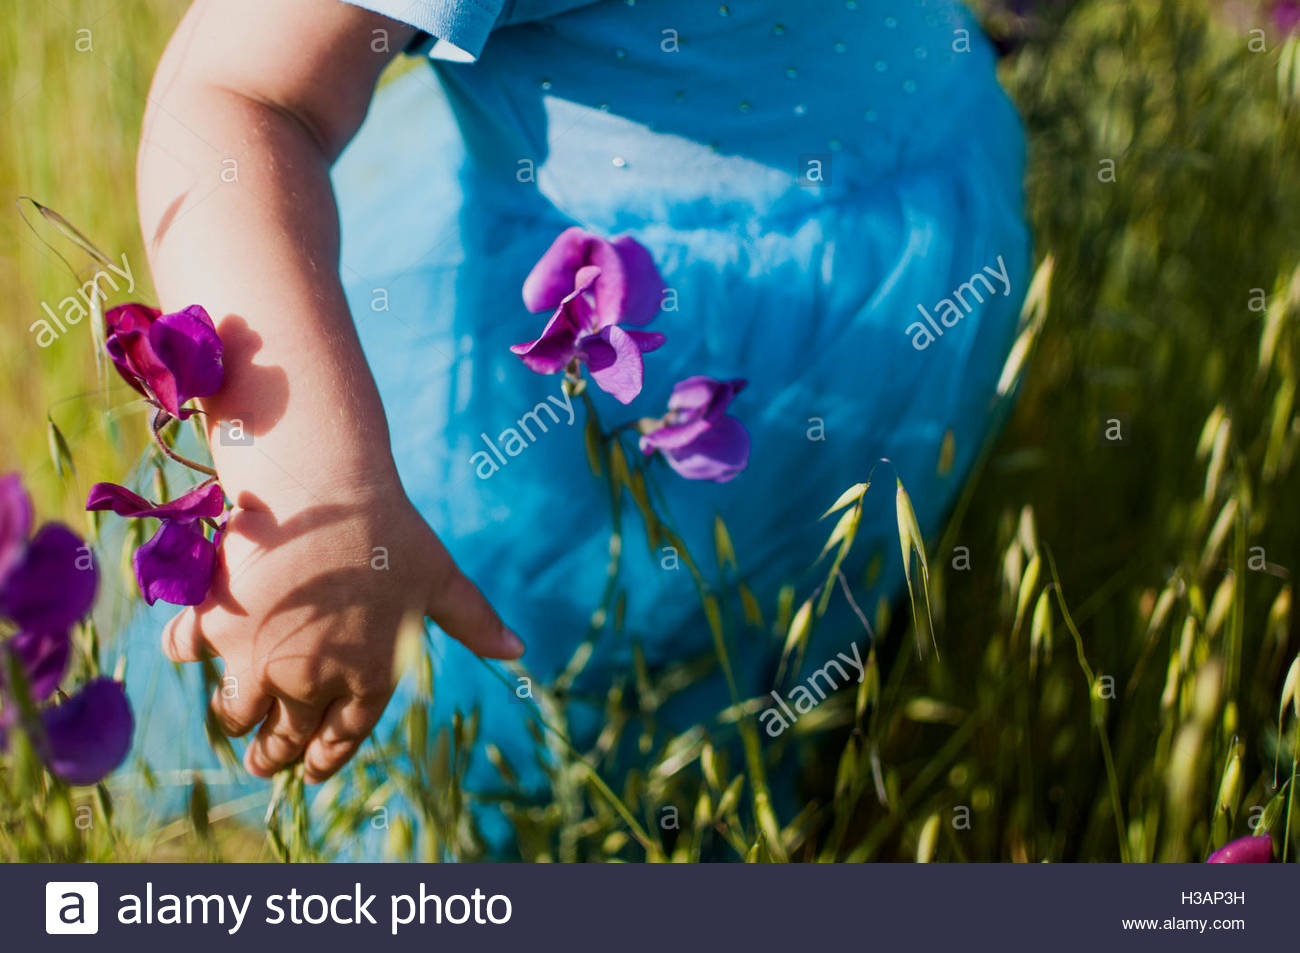 little girl picking flowers in a field - Stock Image